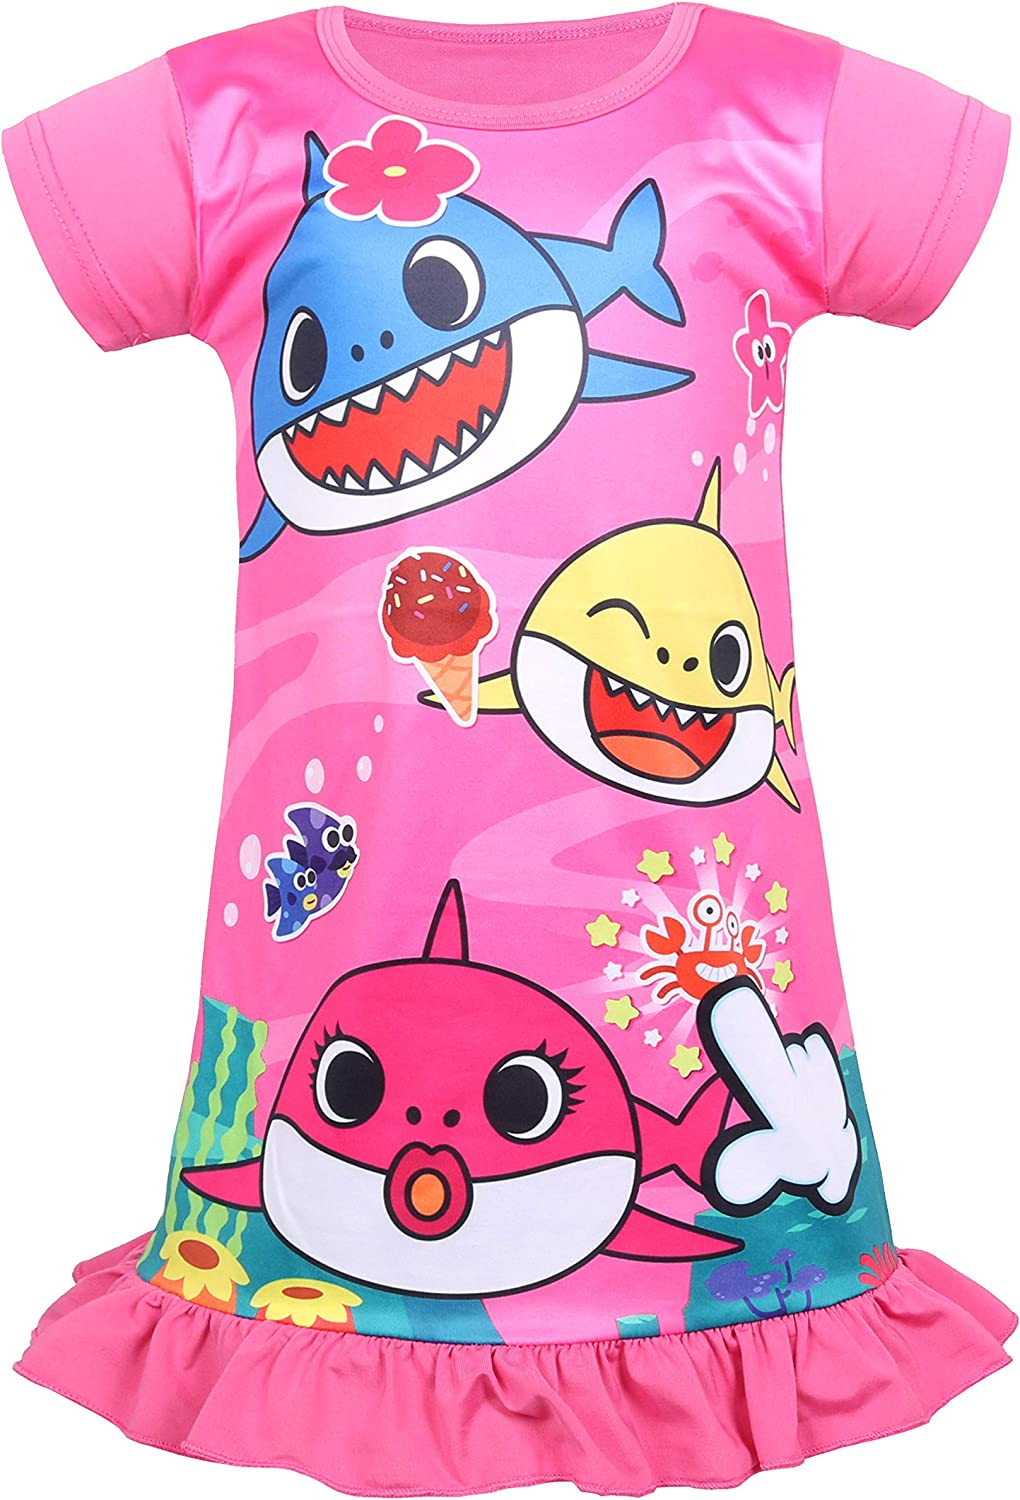 Coralup Toddler Girls Short Sleeve Nightgown Dress(Rose,3-4 Years)